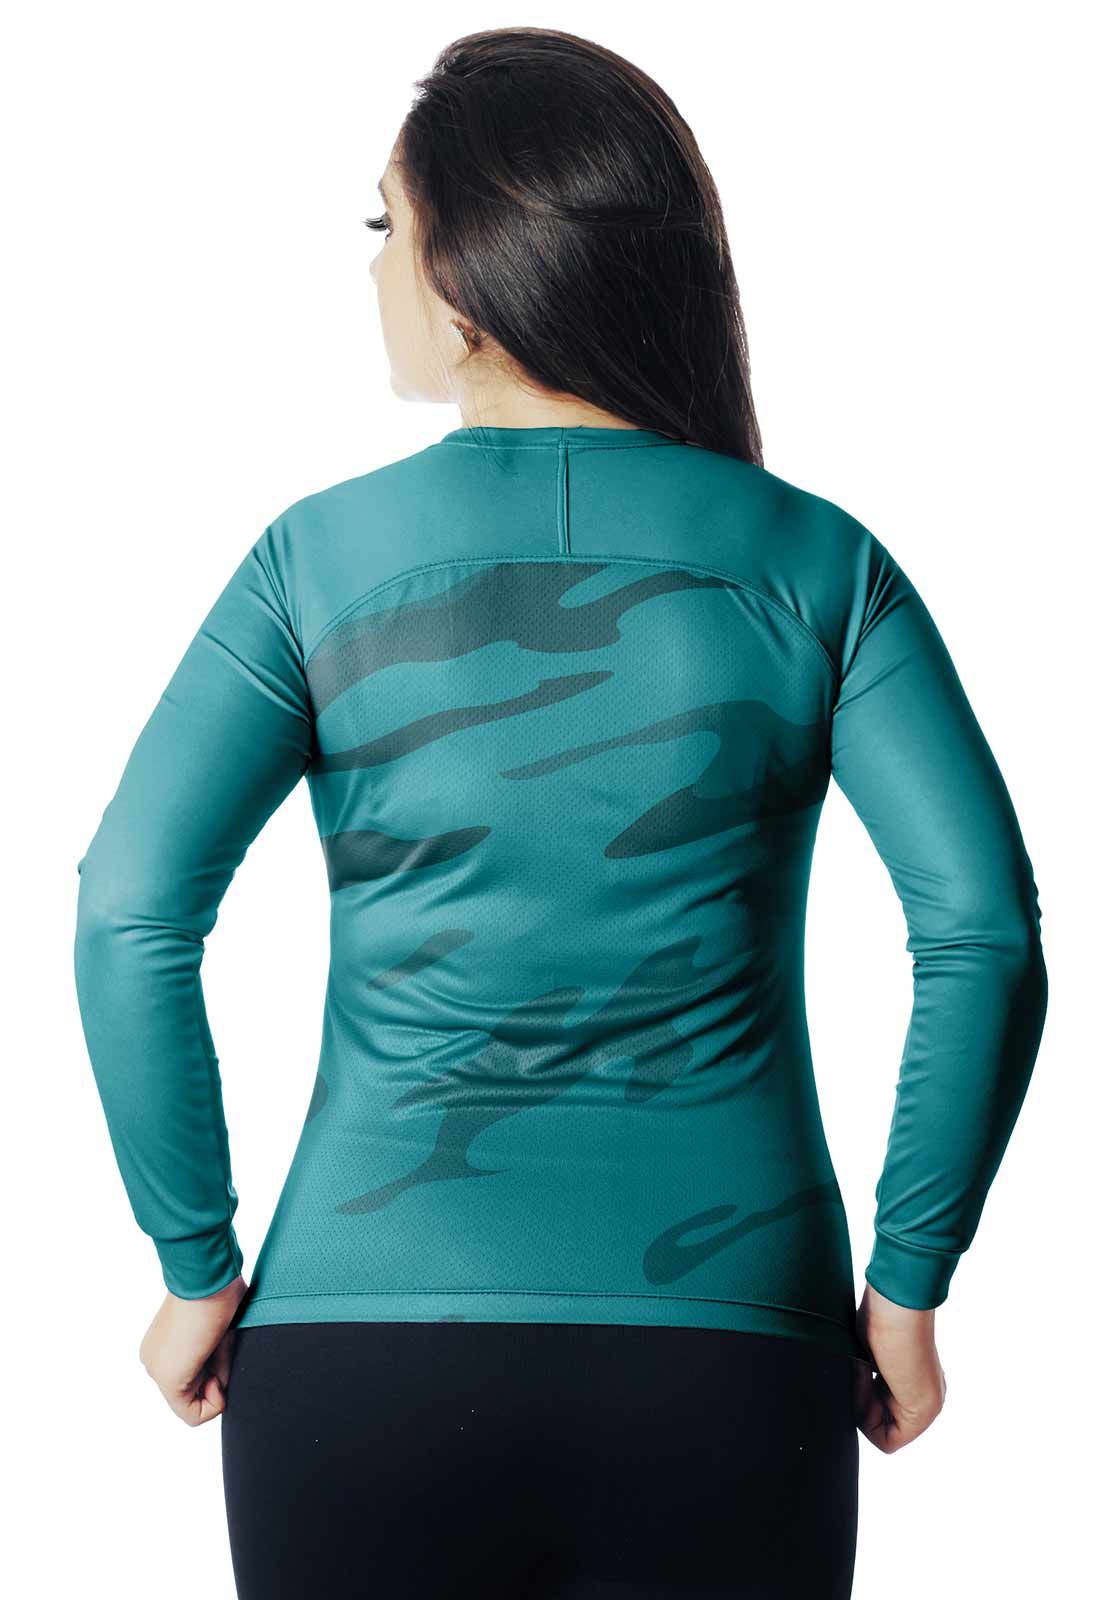 CAMISA DE PESCA CASUAL LAZER PROTEÇÃO UV CAMUFLADA 18 REAL HUNTER FEMININA  - REAL HUNTER OUTDOORS